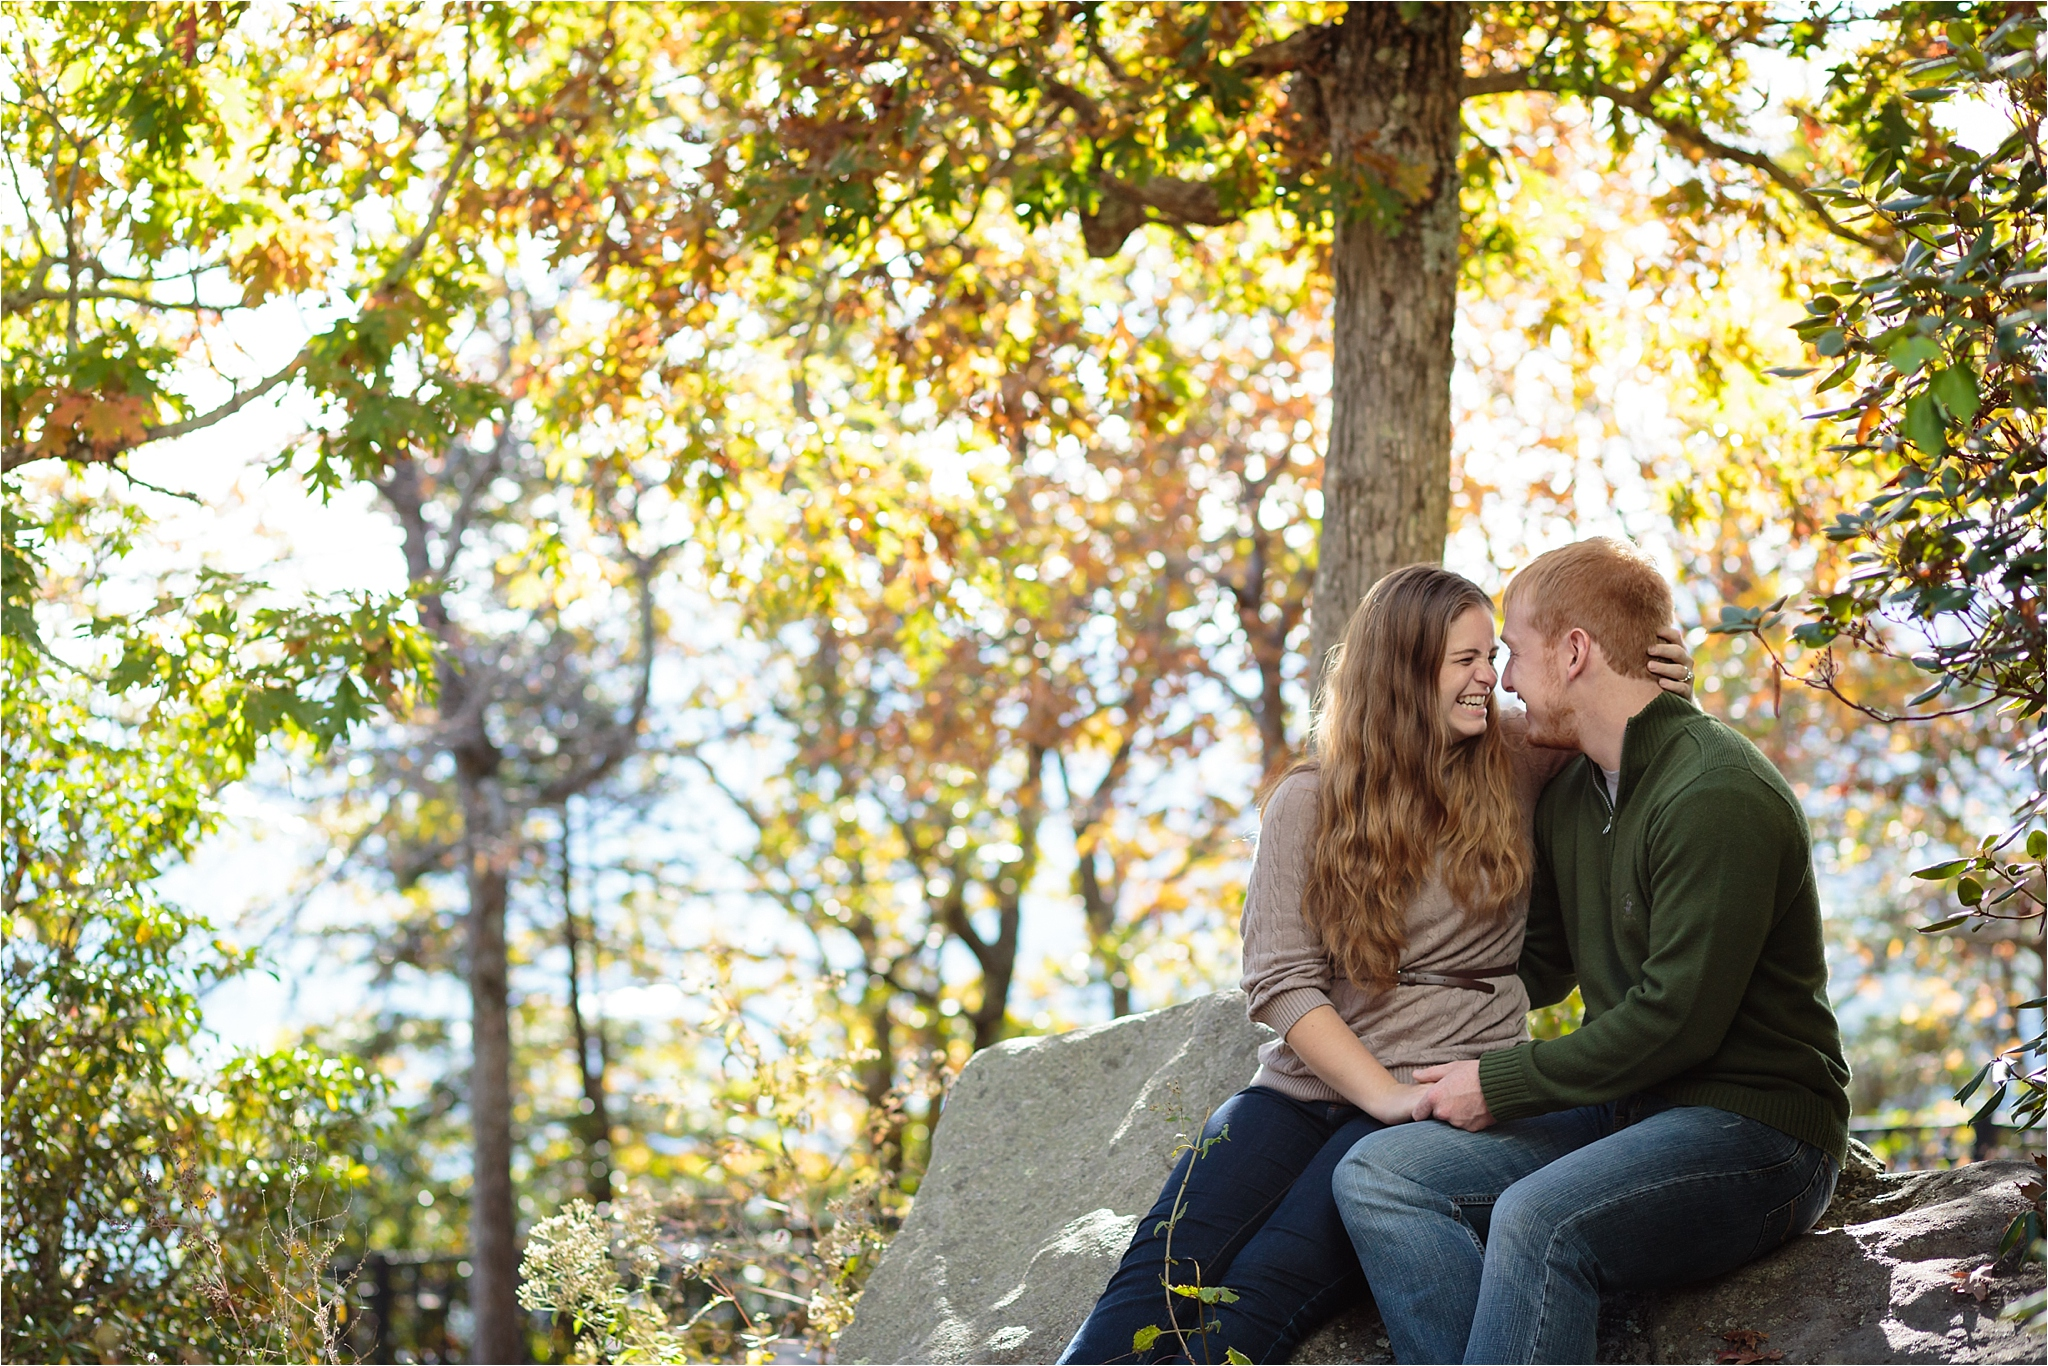 caesars-head-engagement-shoot-3_blog.jpg